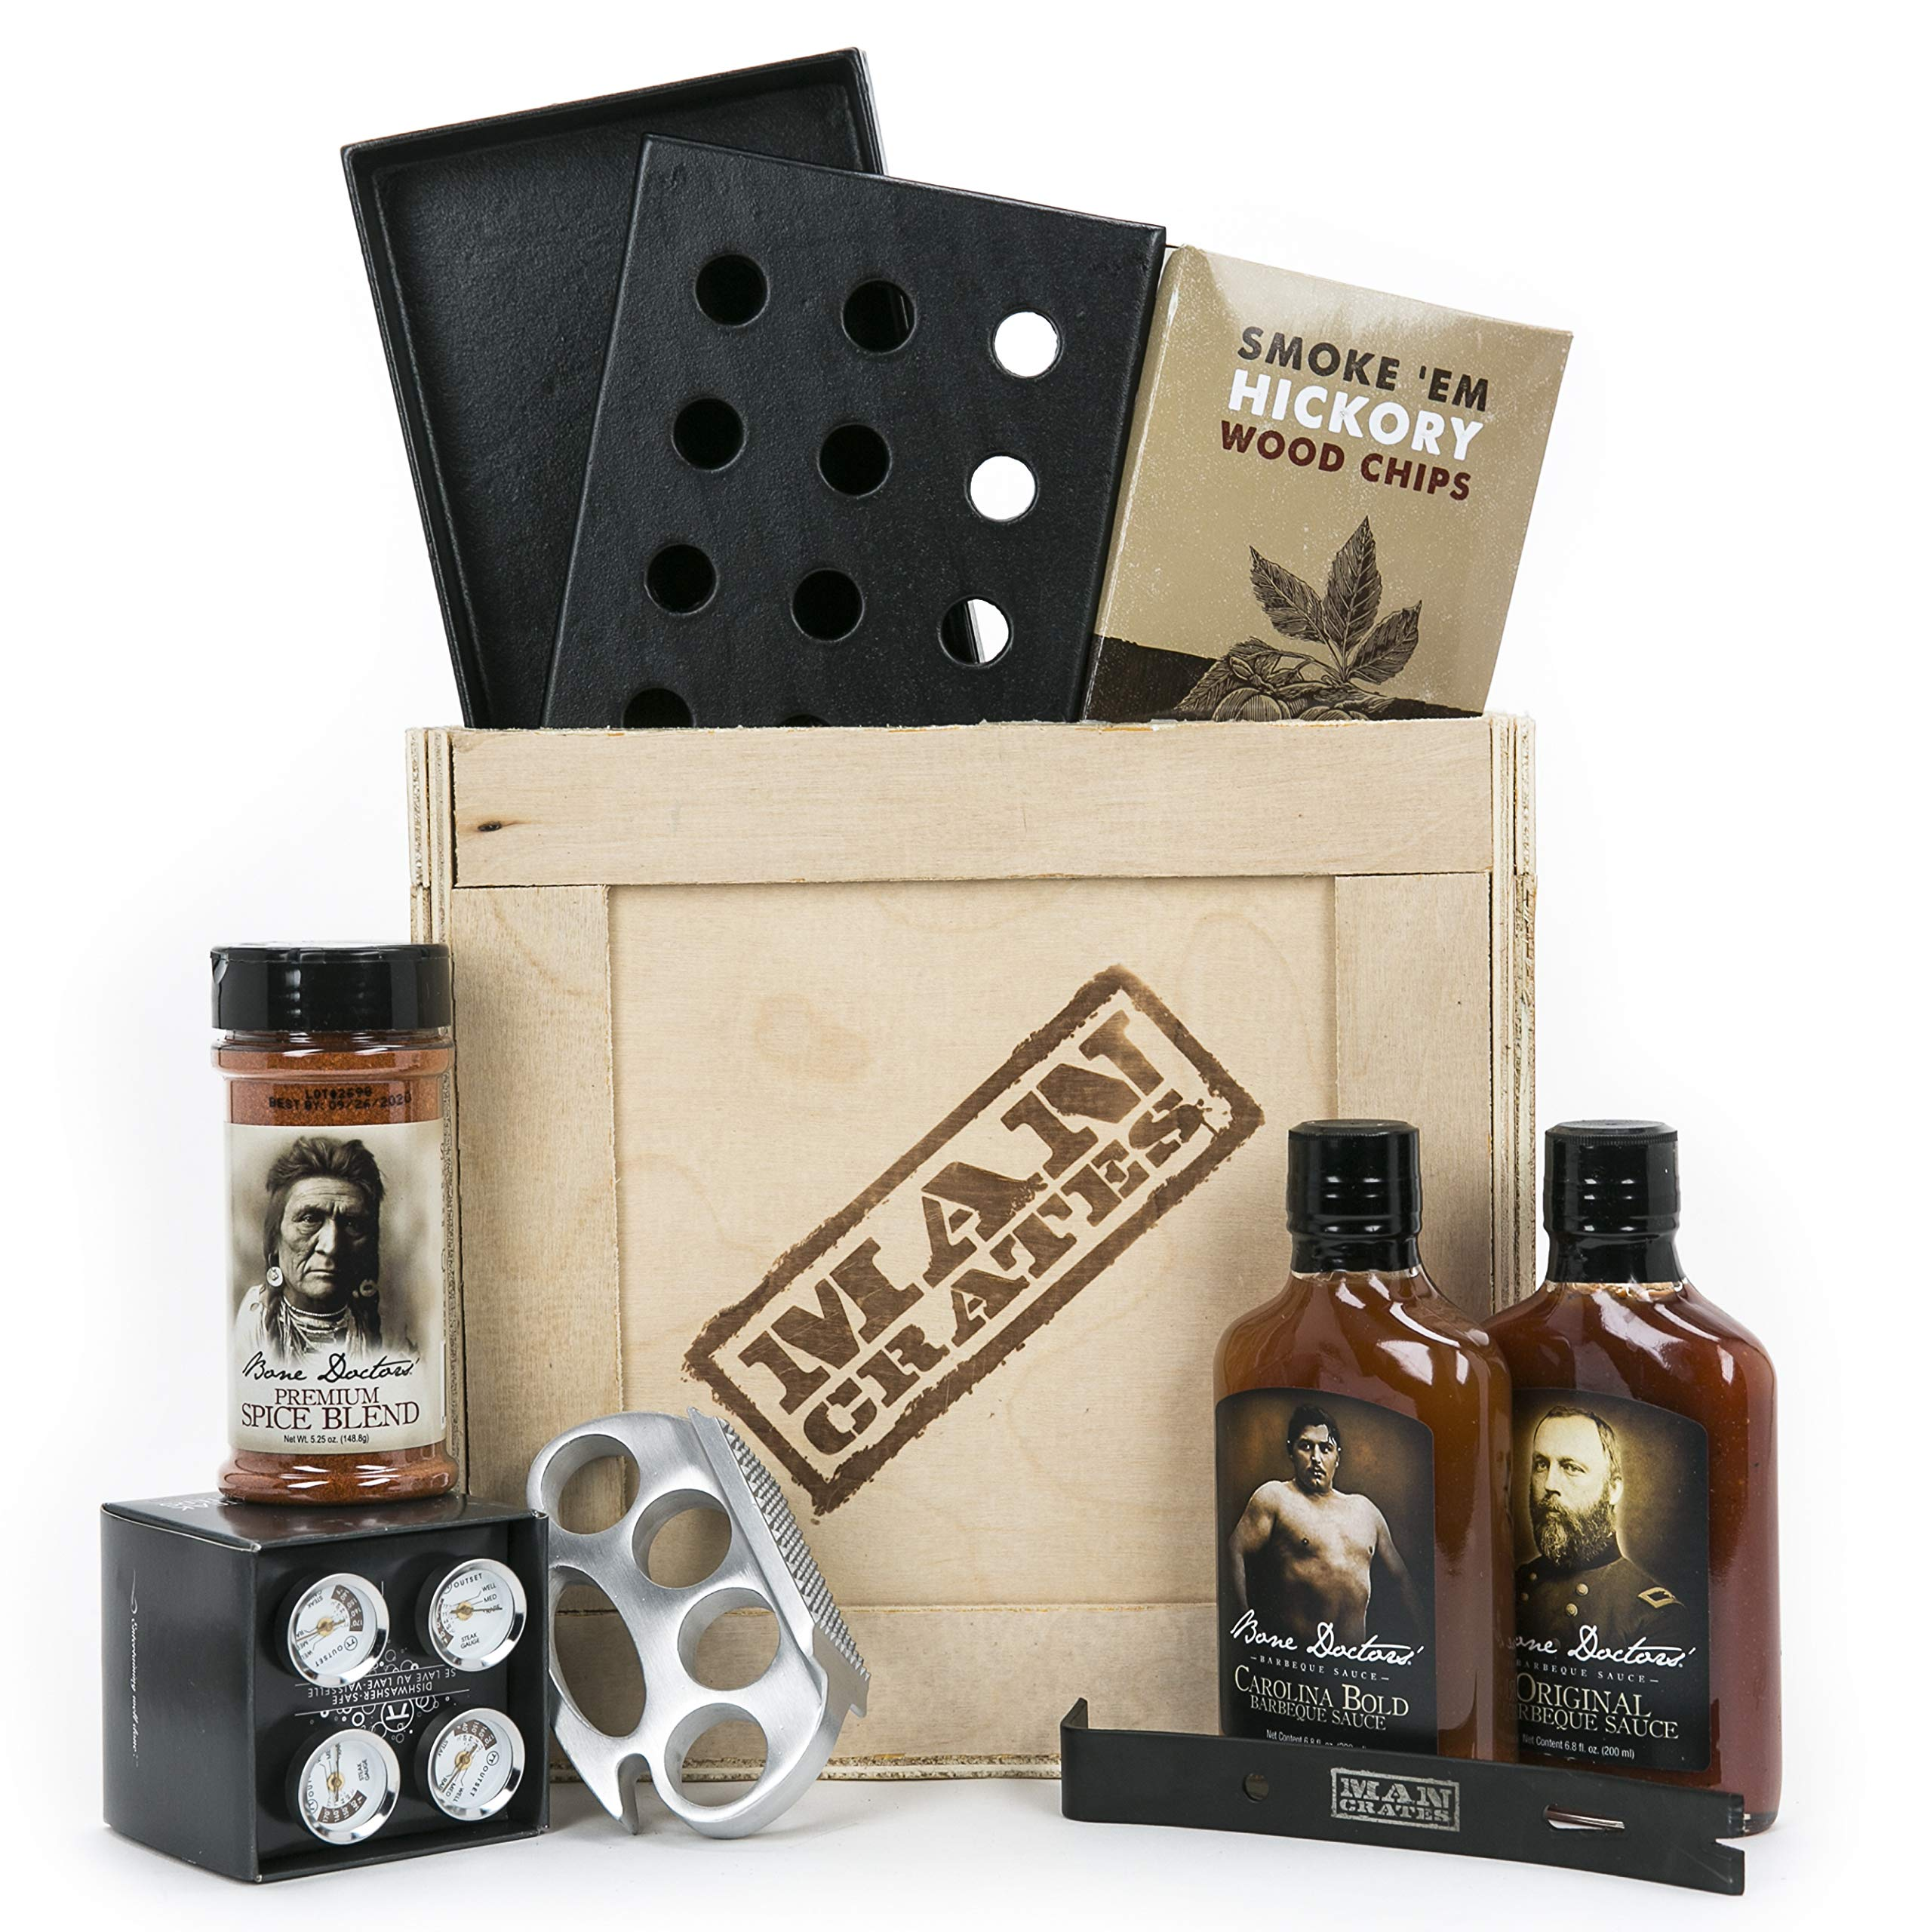 Man Crates Grill Master Crate with Wood Chips, Smoker Box, Sauce and Tenderizer - Great Gifts for Men